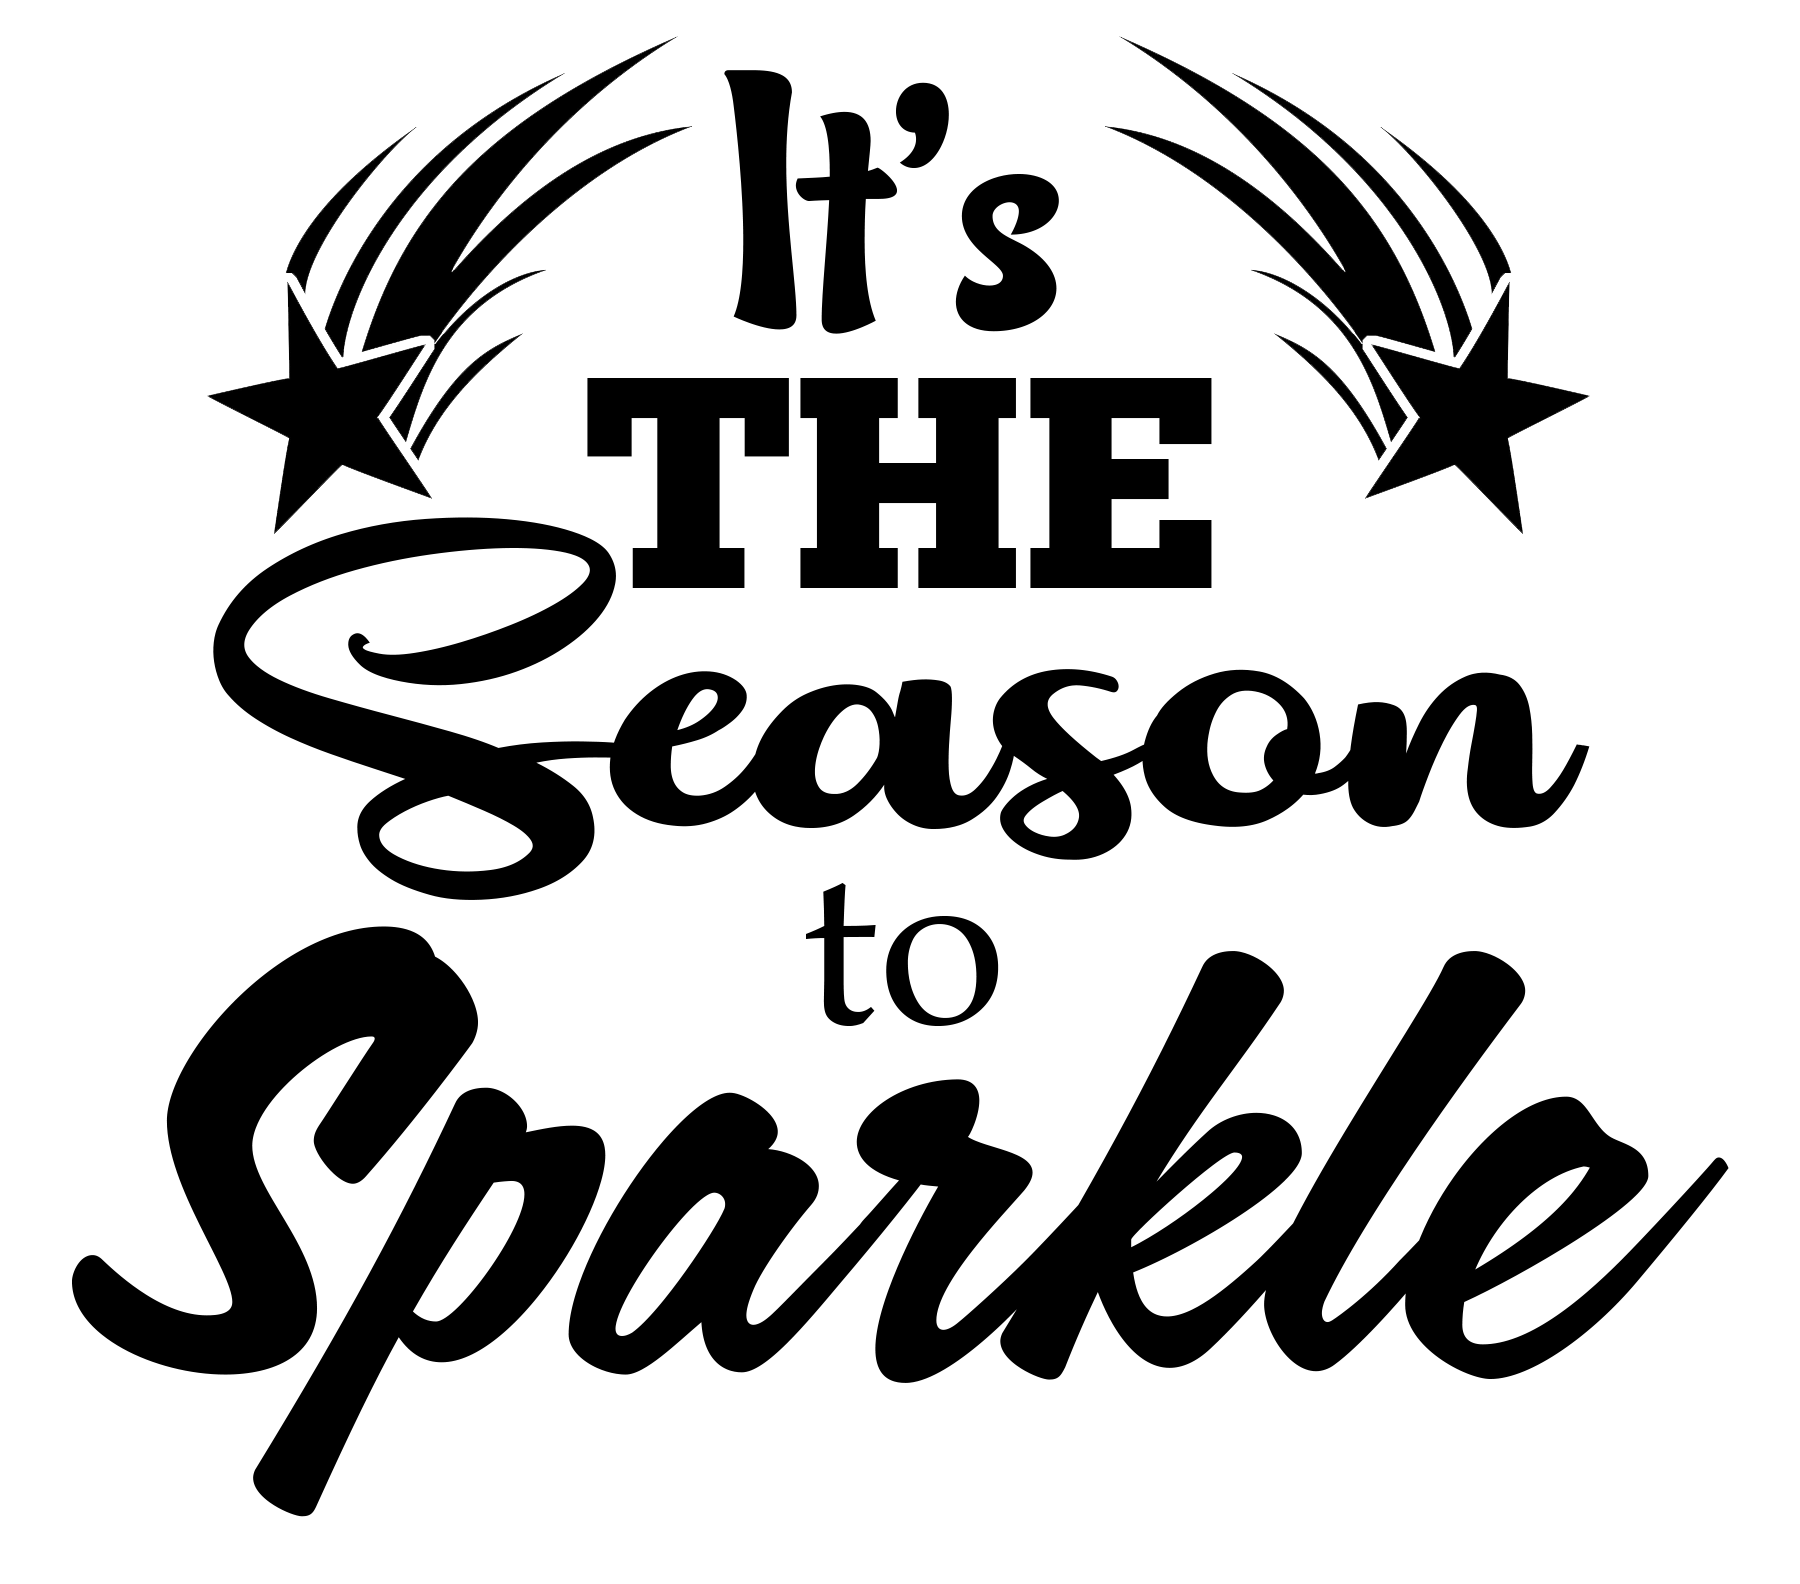 Free Season to Sparkle SVG File